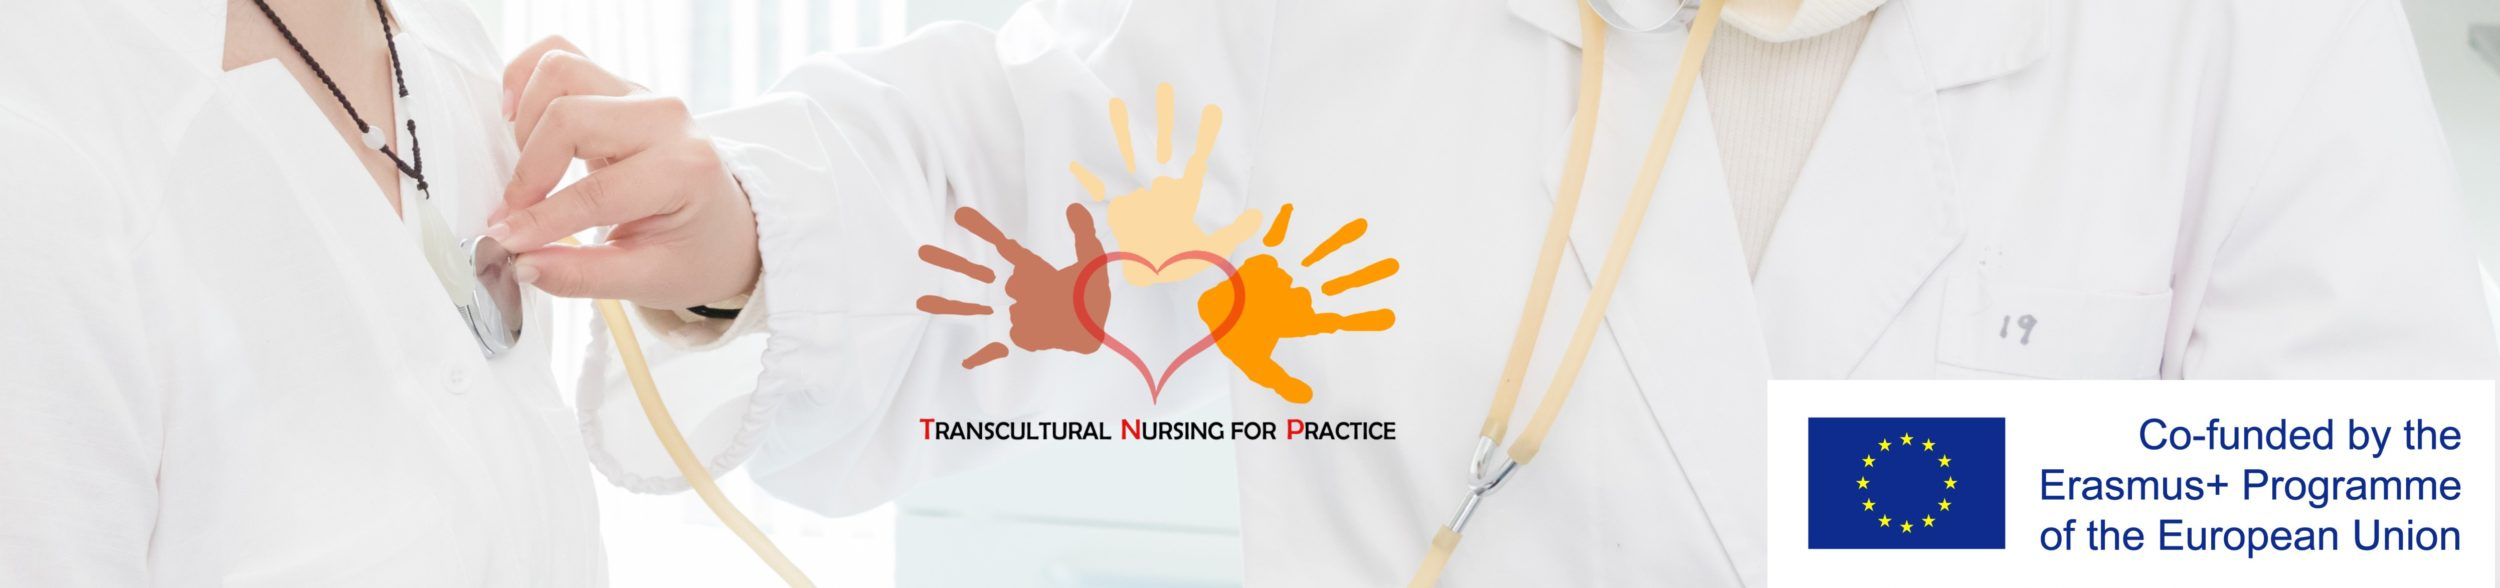 critique of transcultural nursing Transcultural nursing transcultural nursing is a comparative study of cultures to understand similarities (culture universal) and difference (culture-specific) across human groups (leininger, 1991.